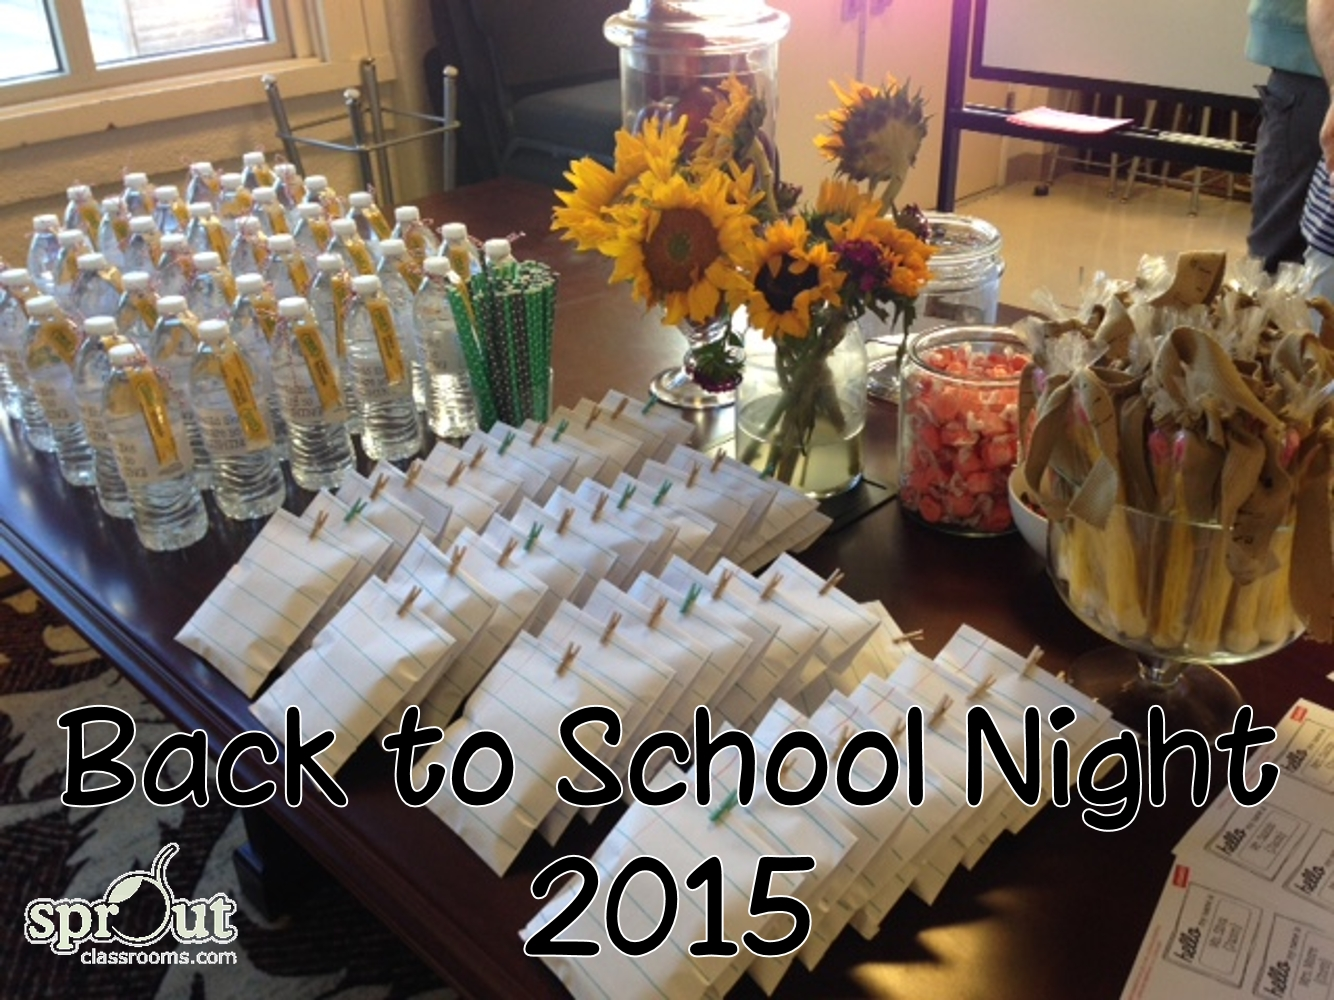 back to school night 2015! - sprout classrooms